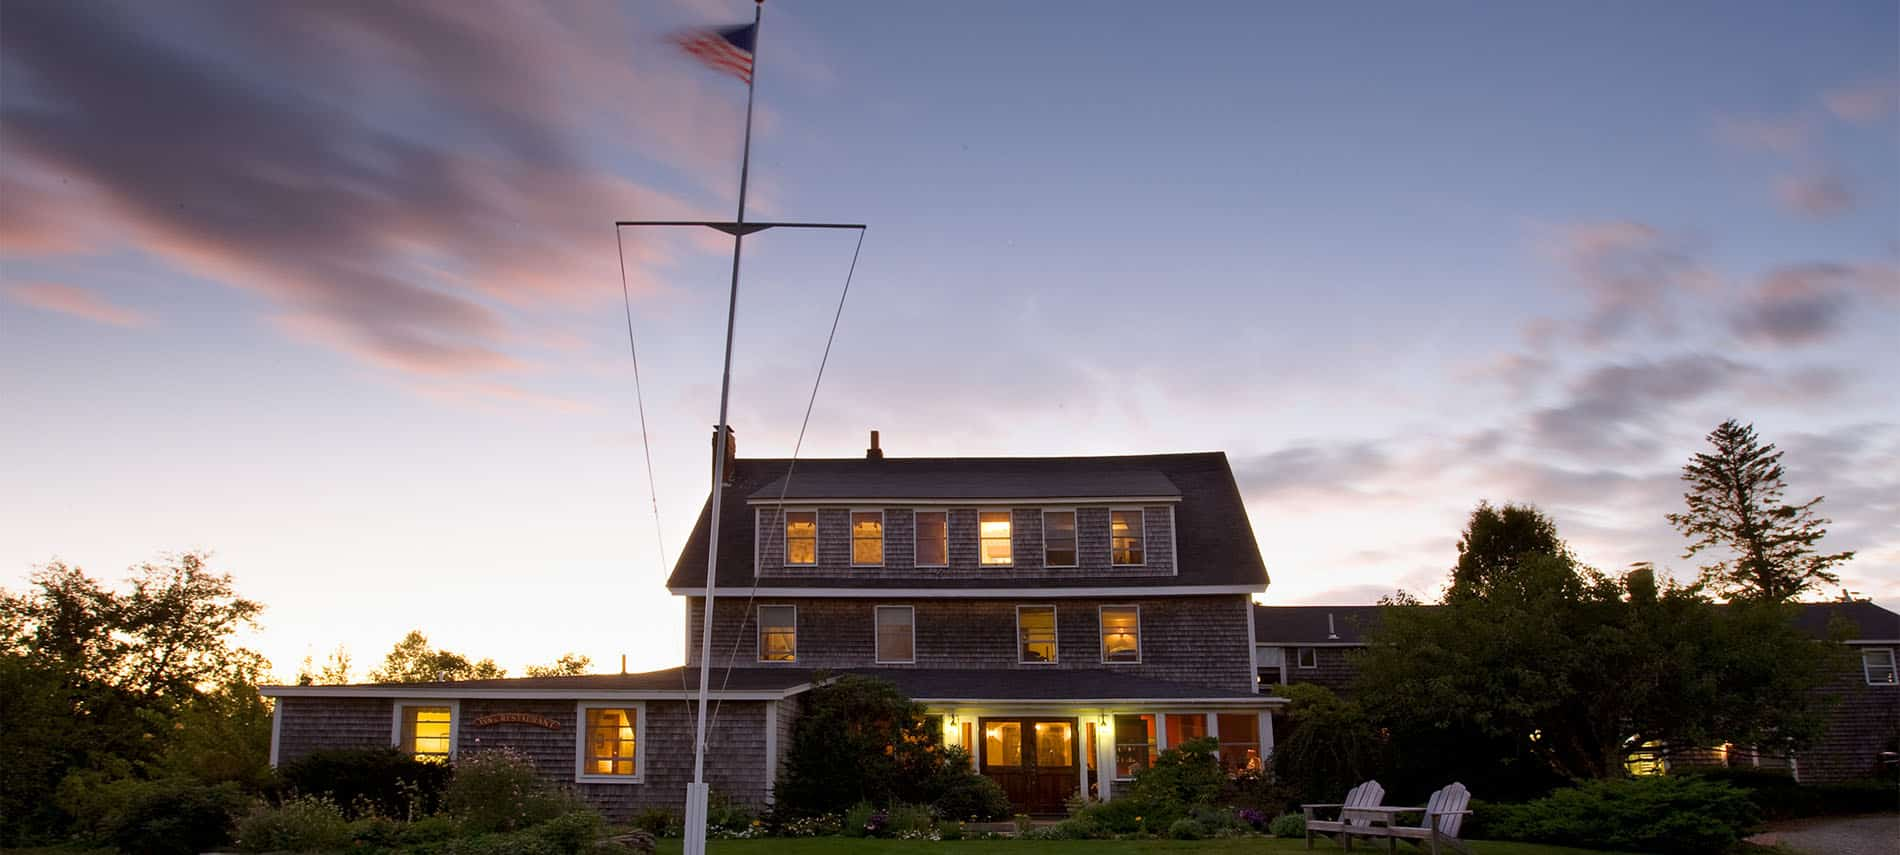 Outside of grey house with several windows and a US flag flying.